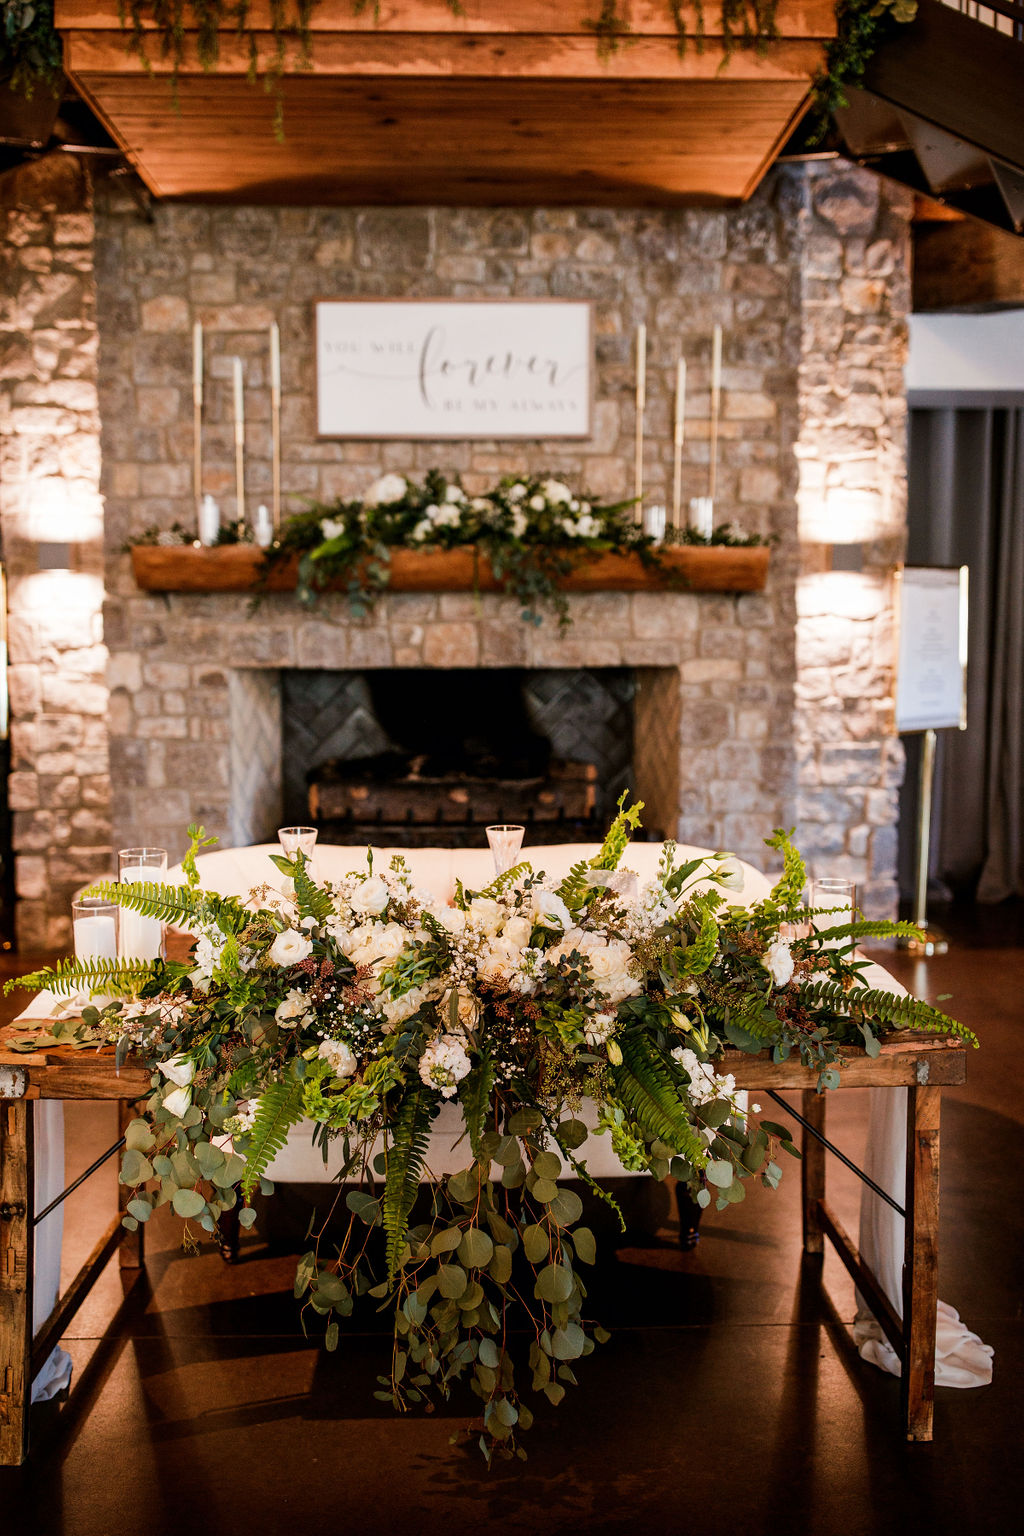 Wedding Sweetheart Table Decor: Beautiful Graystone Quarry Wedding featured on Nashville Bride Guide!